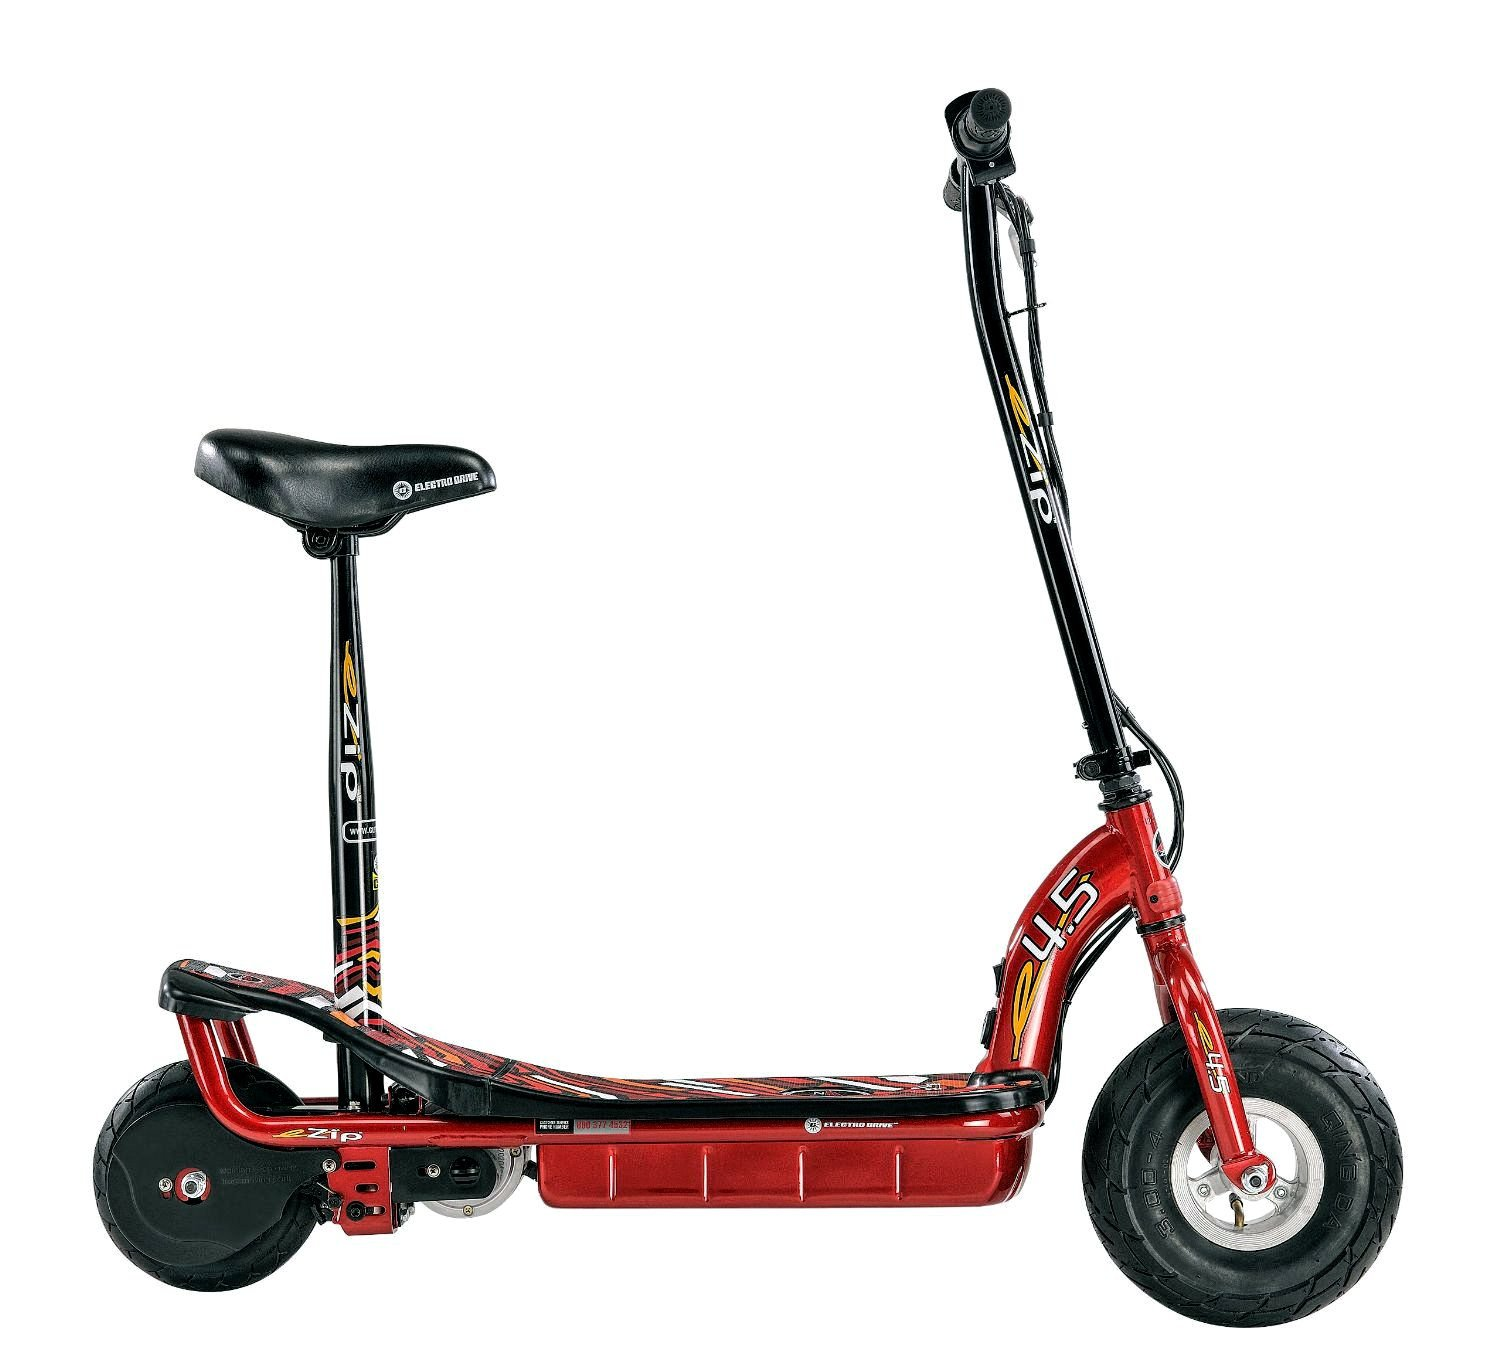 Best electric scooter for kids in india for Motorized scooter for kids